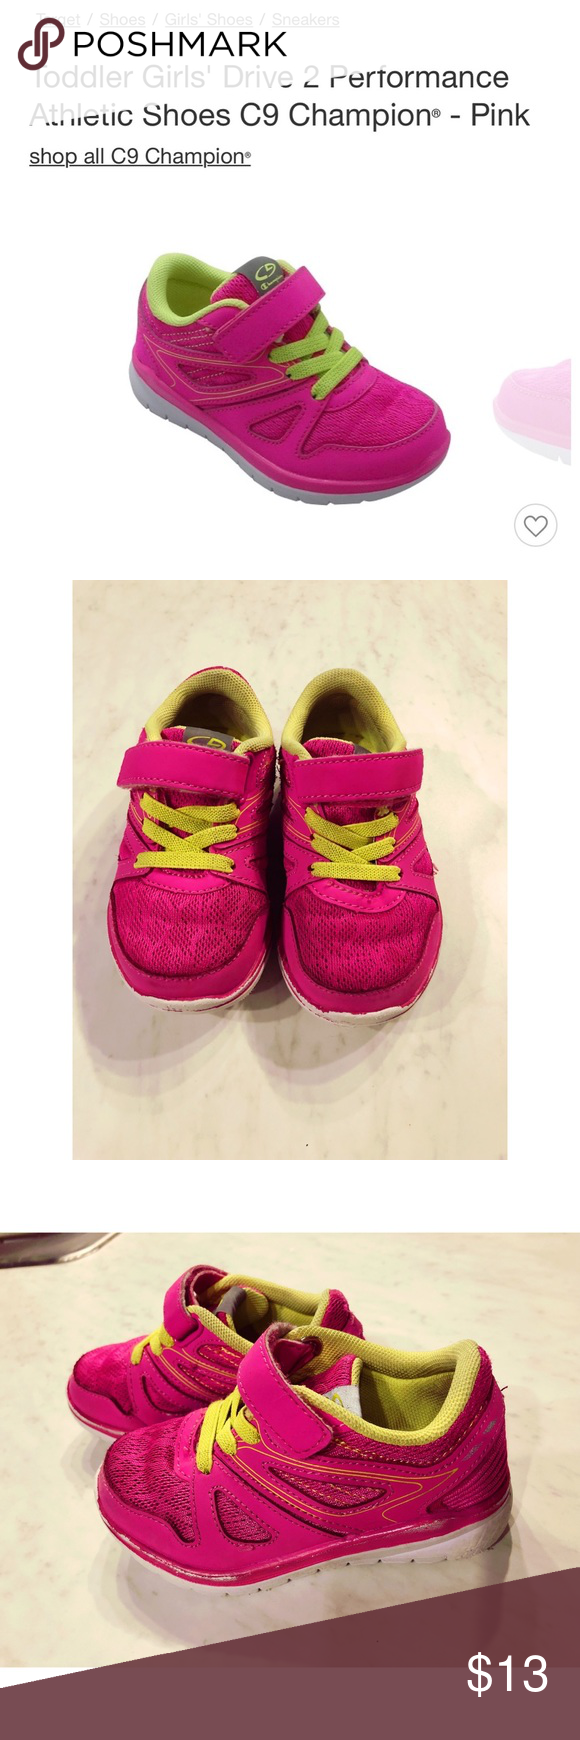 4d3eb139026 Toddler Girl Pink Sneakers size 7 Toddler girl Pink C9 Champion Sneakers  Good condition (still has lots and lots of life left) Size 7 Beautiful Pink  color ...